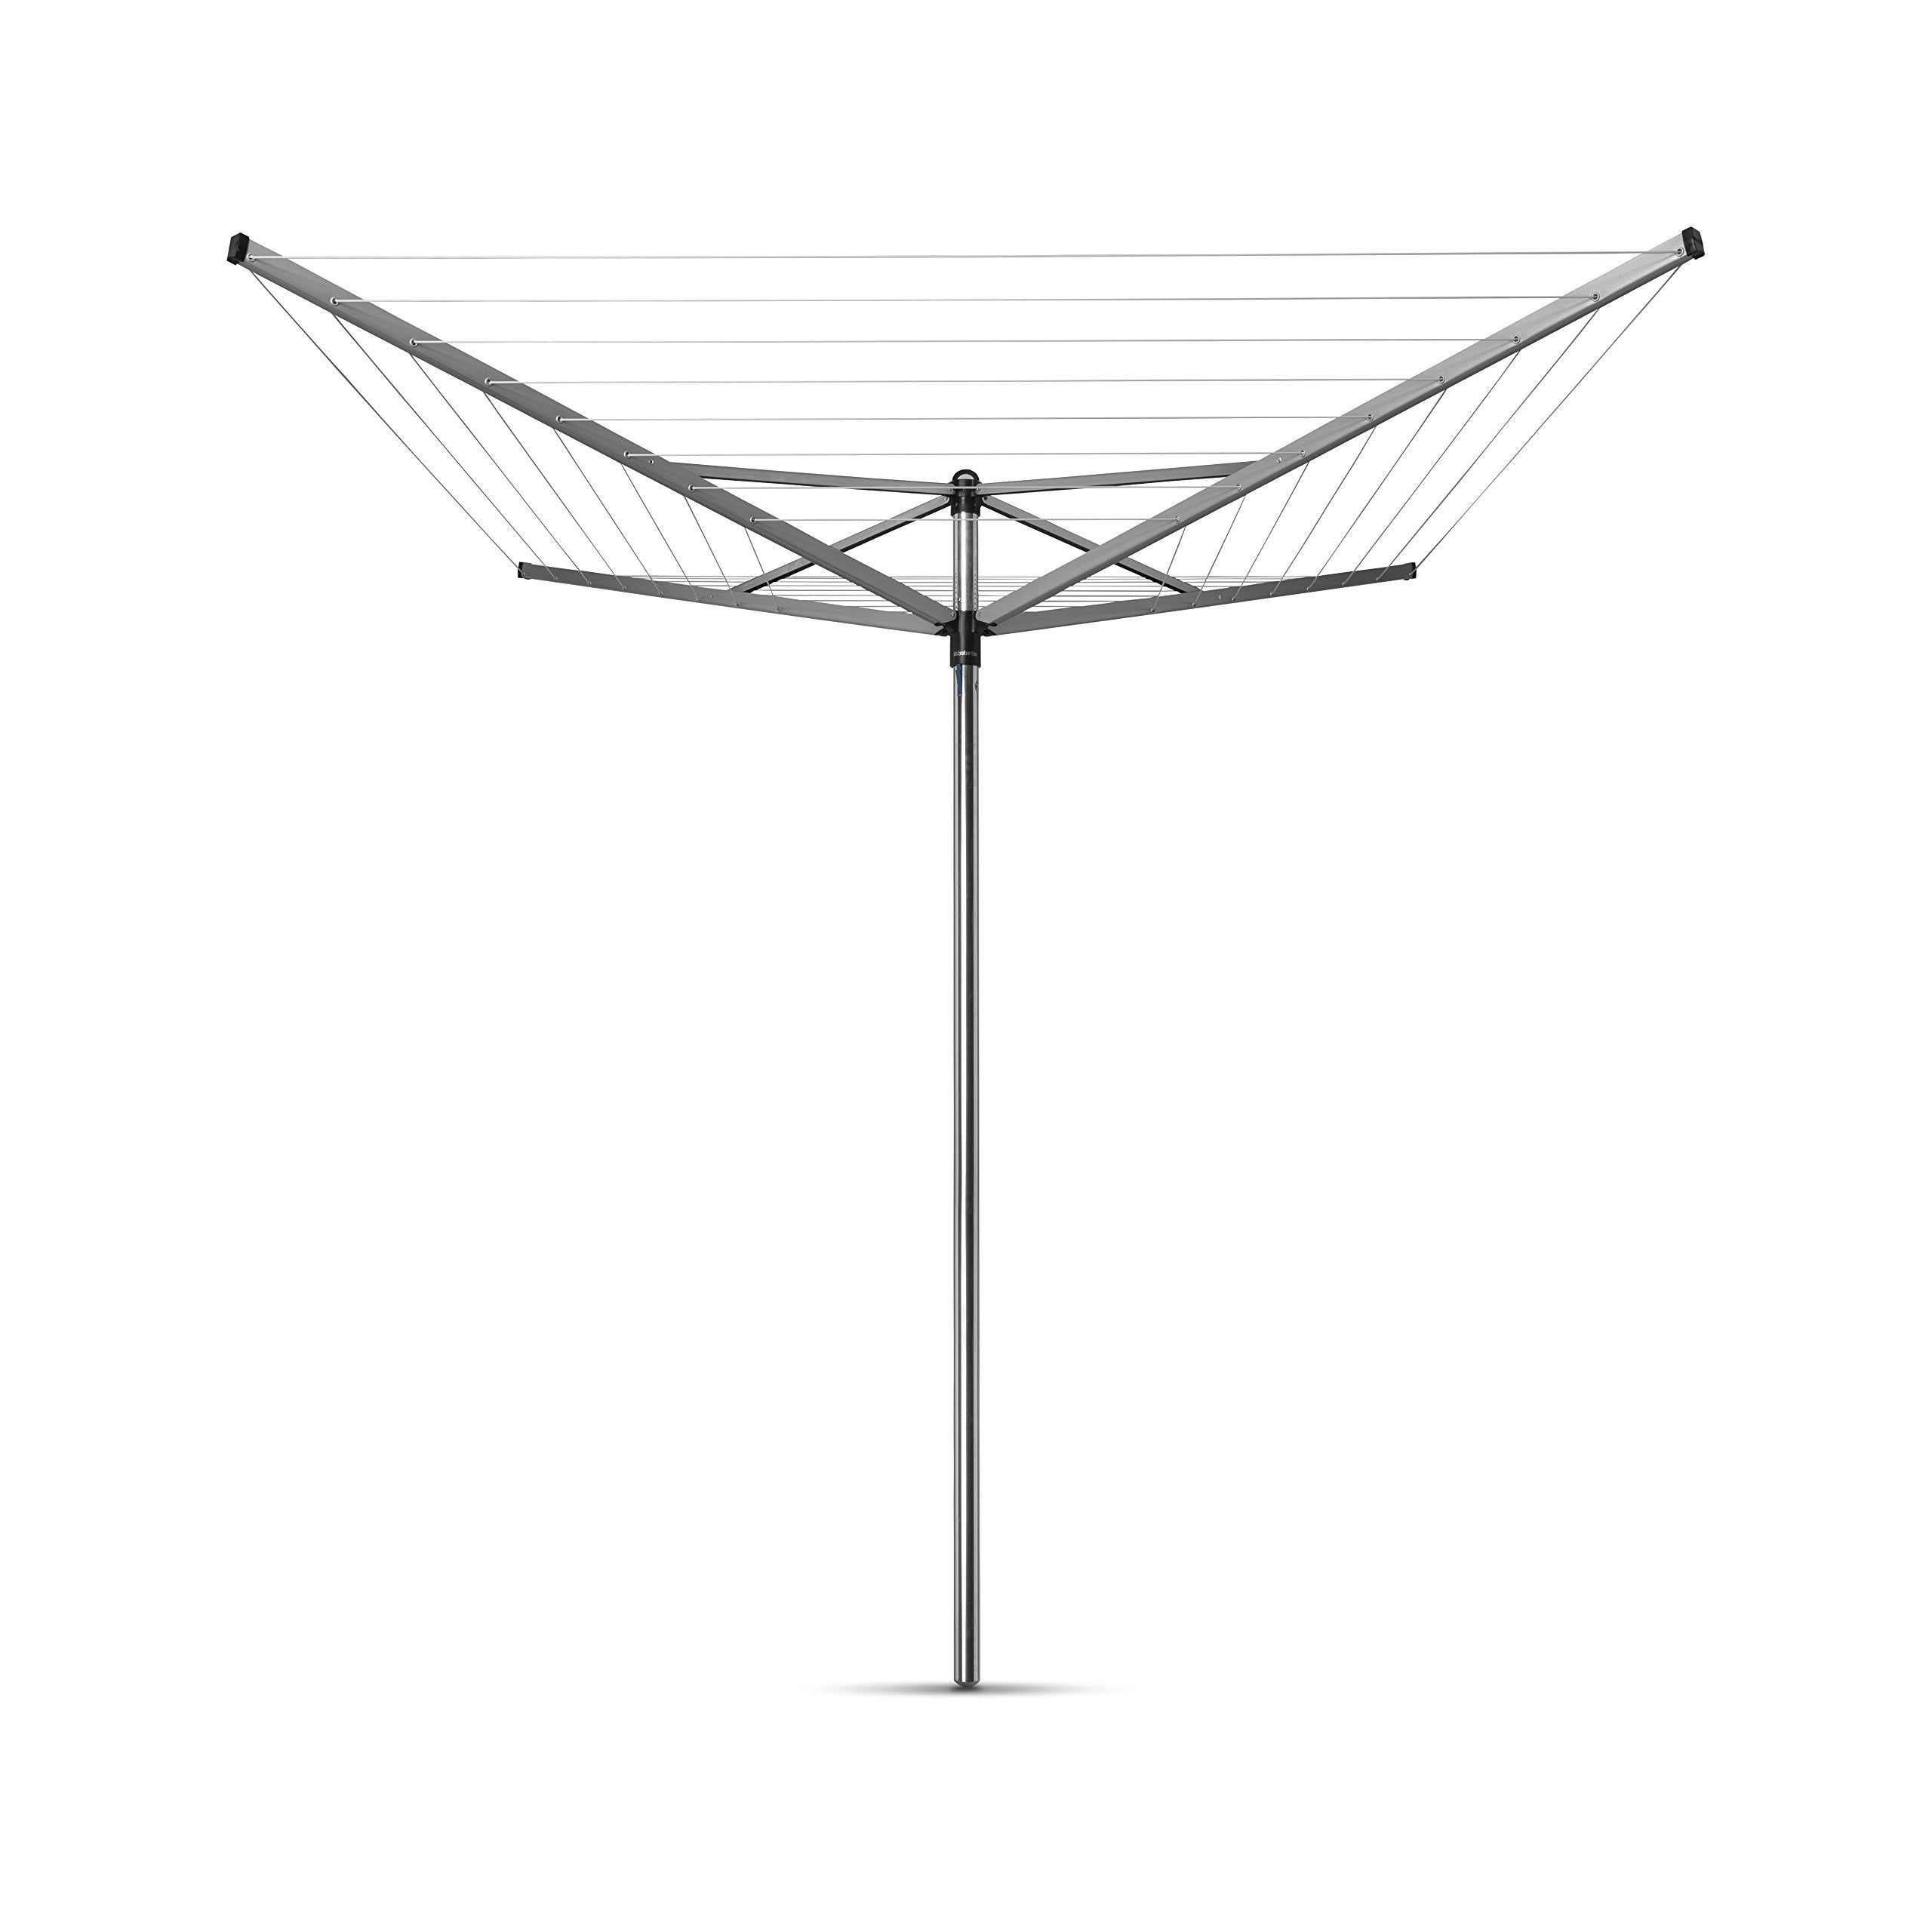 Brabantia Topspinner Rotary Dryer Clothesline with Metal Soil Spear, 197 Feet/ 60 M